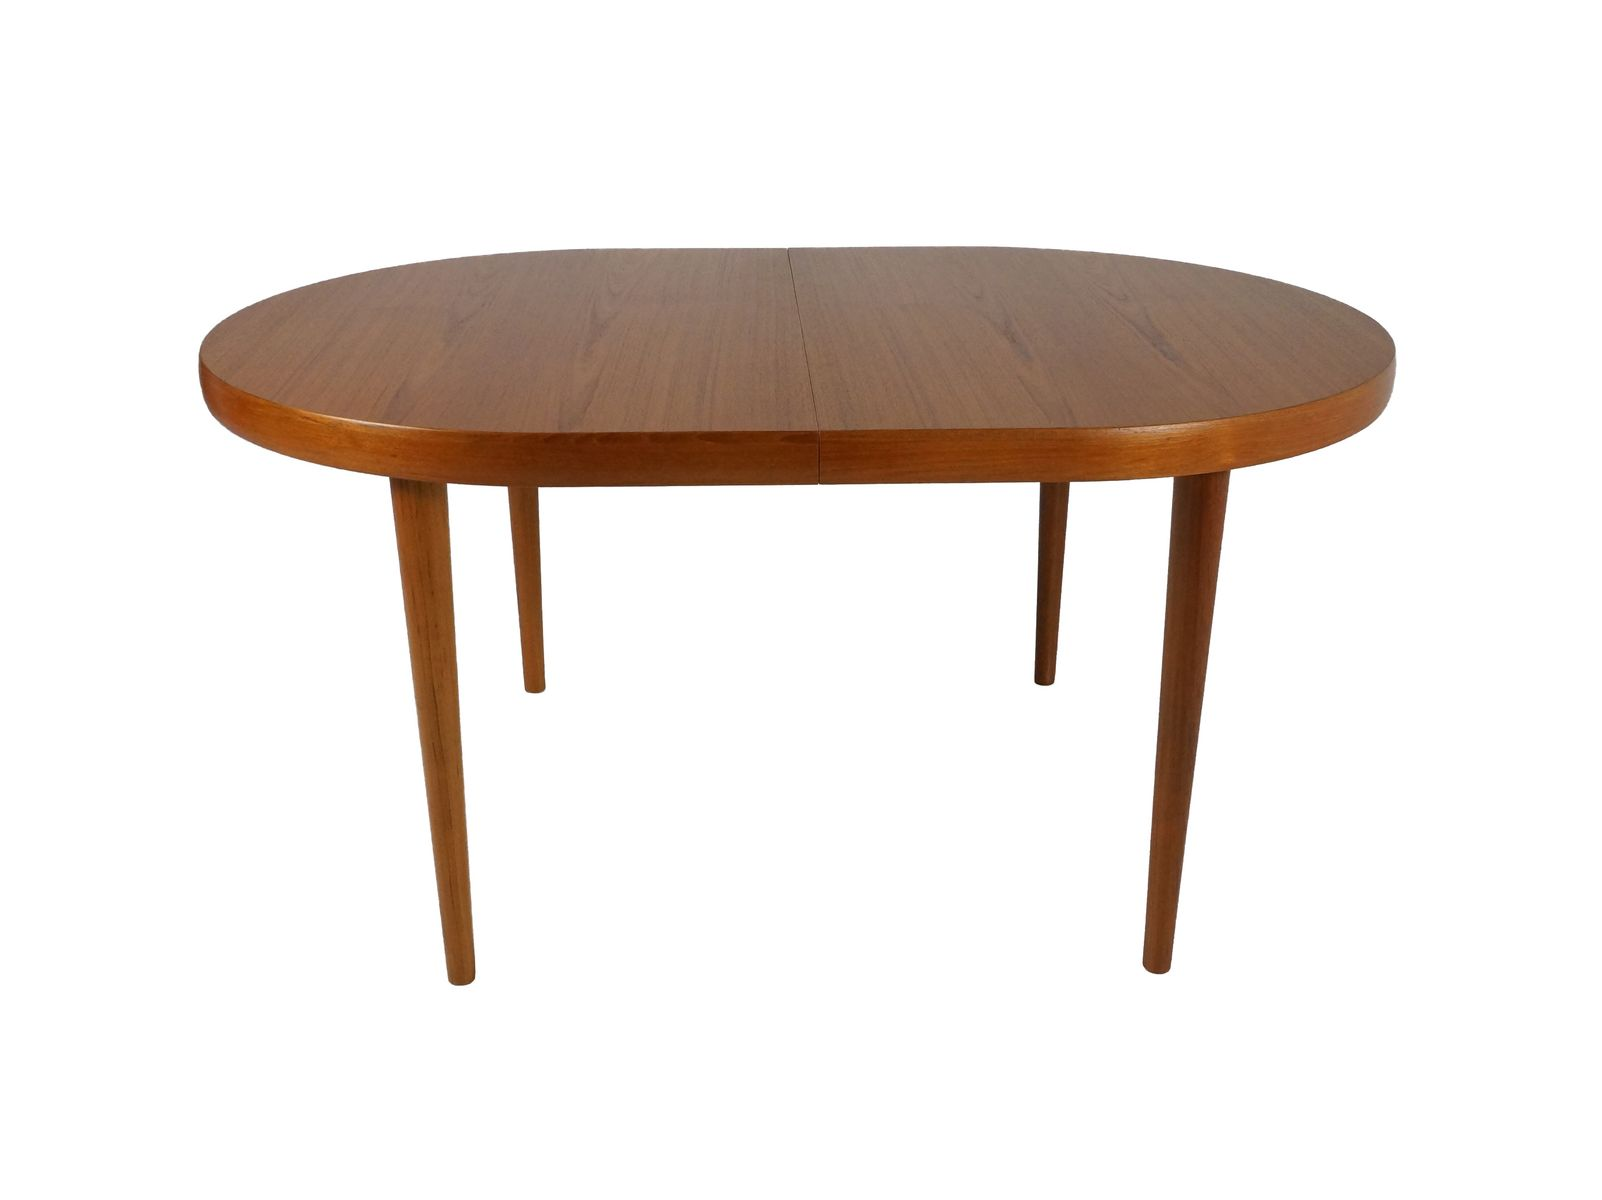 Table salle a manger ovale extensible table salle a for Table de salle a manger retractable